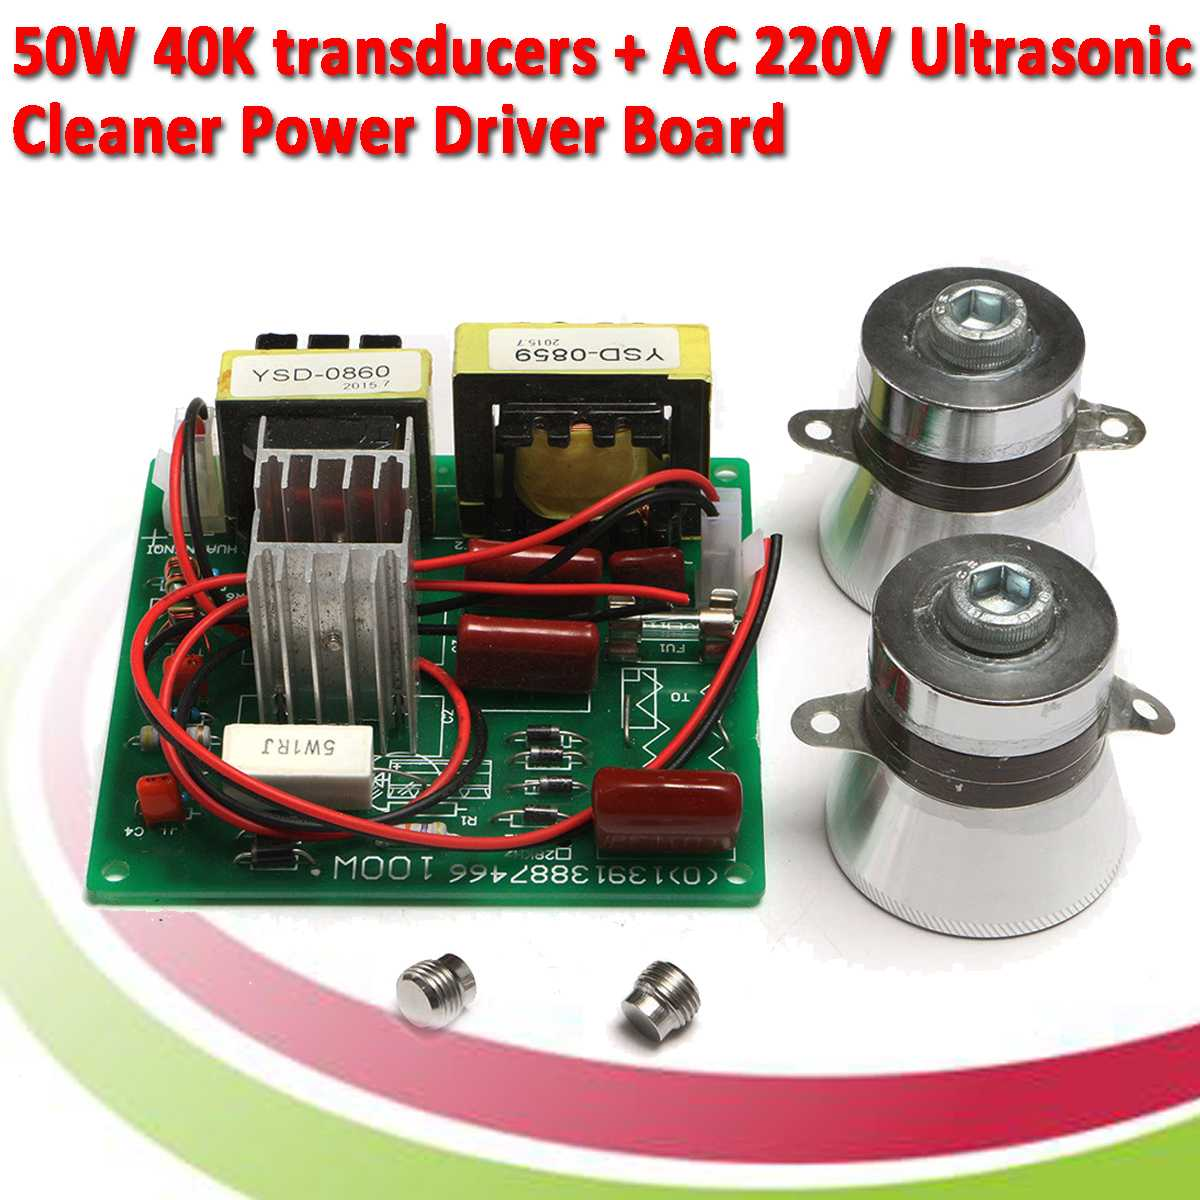 100W 220V Ultrasonic Cleaner  Including Matching Transducers Small  Drive Board|Instrument Parts & Accessories| |  - title=